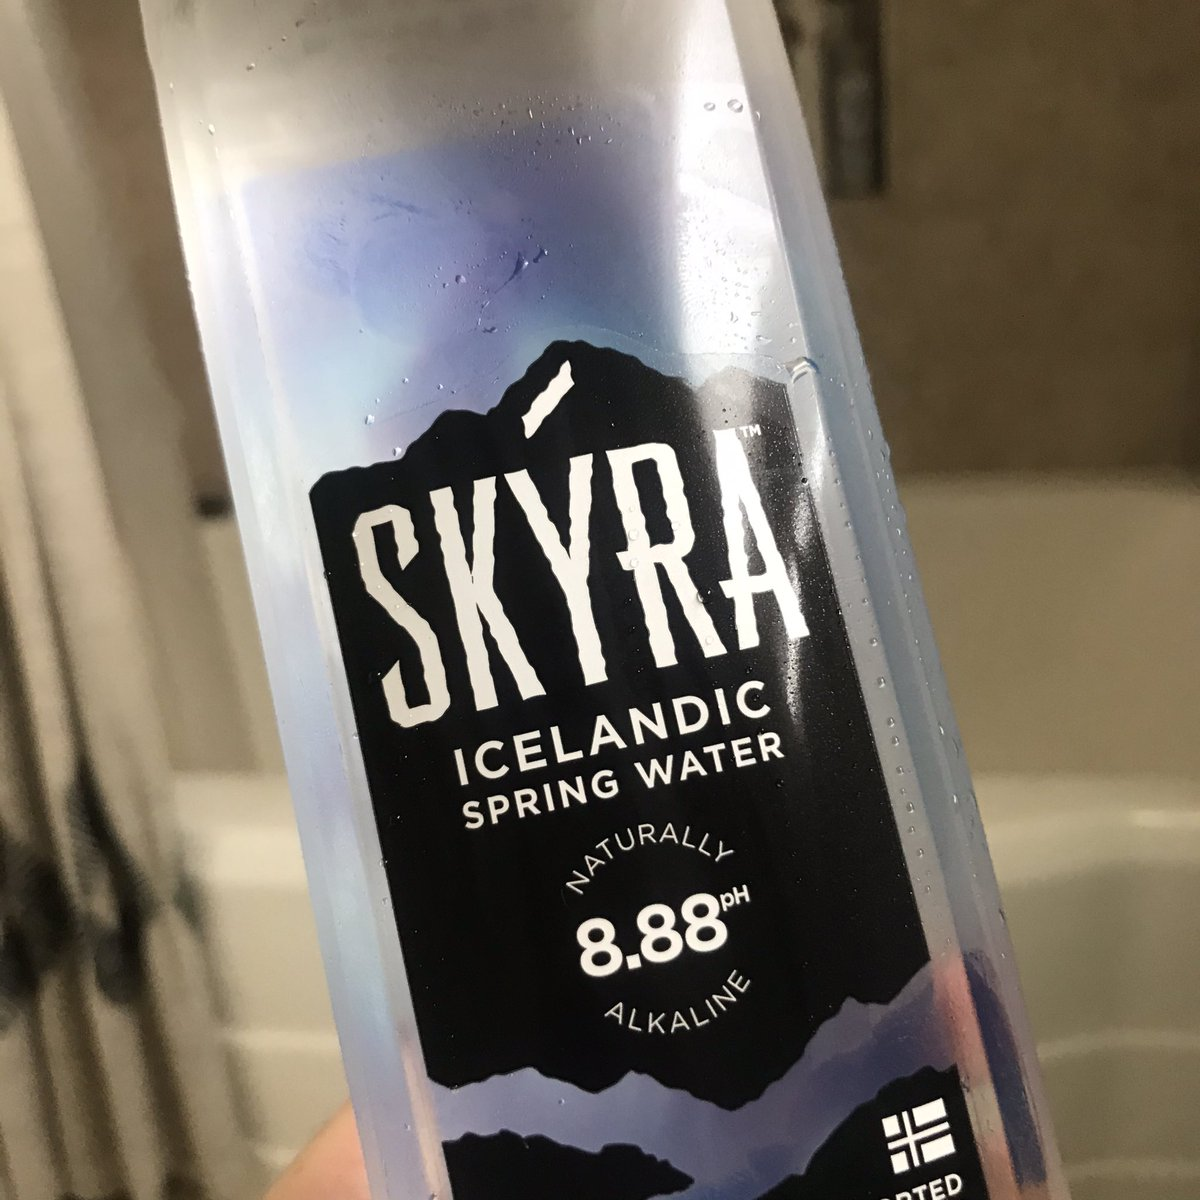 trying a different Icelandic dumb water (on the toilet)